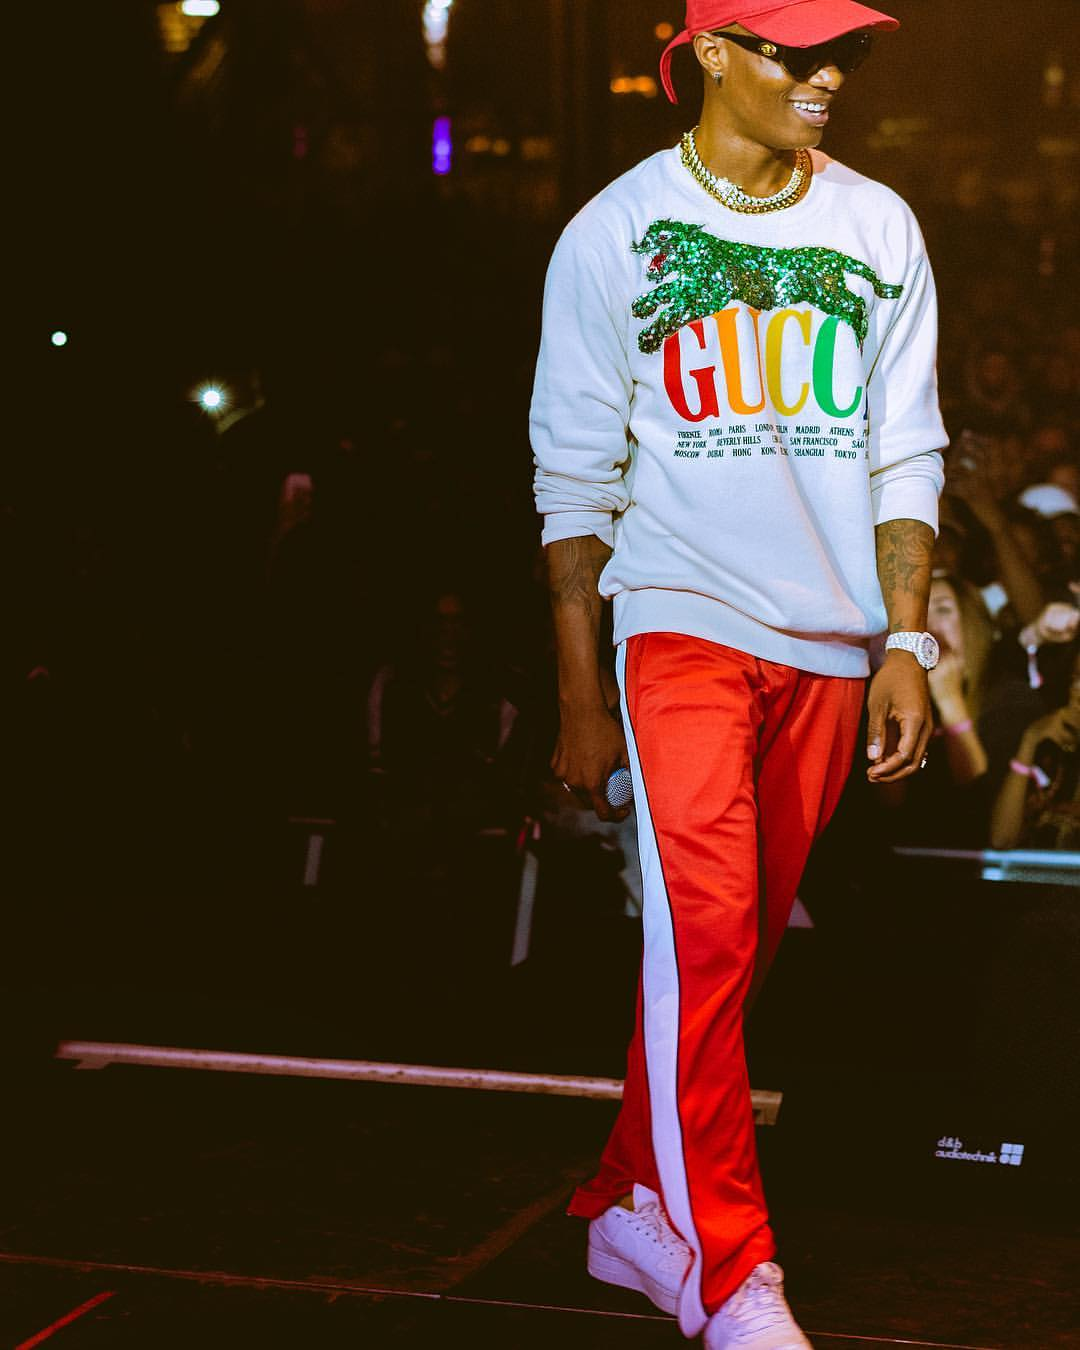 Photo Of Wizkid Performing At Hype Festival In Germany